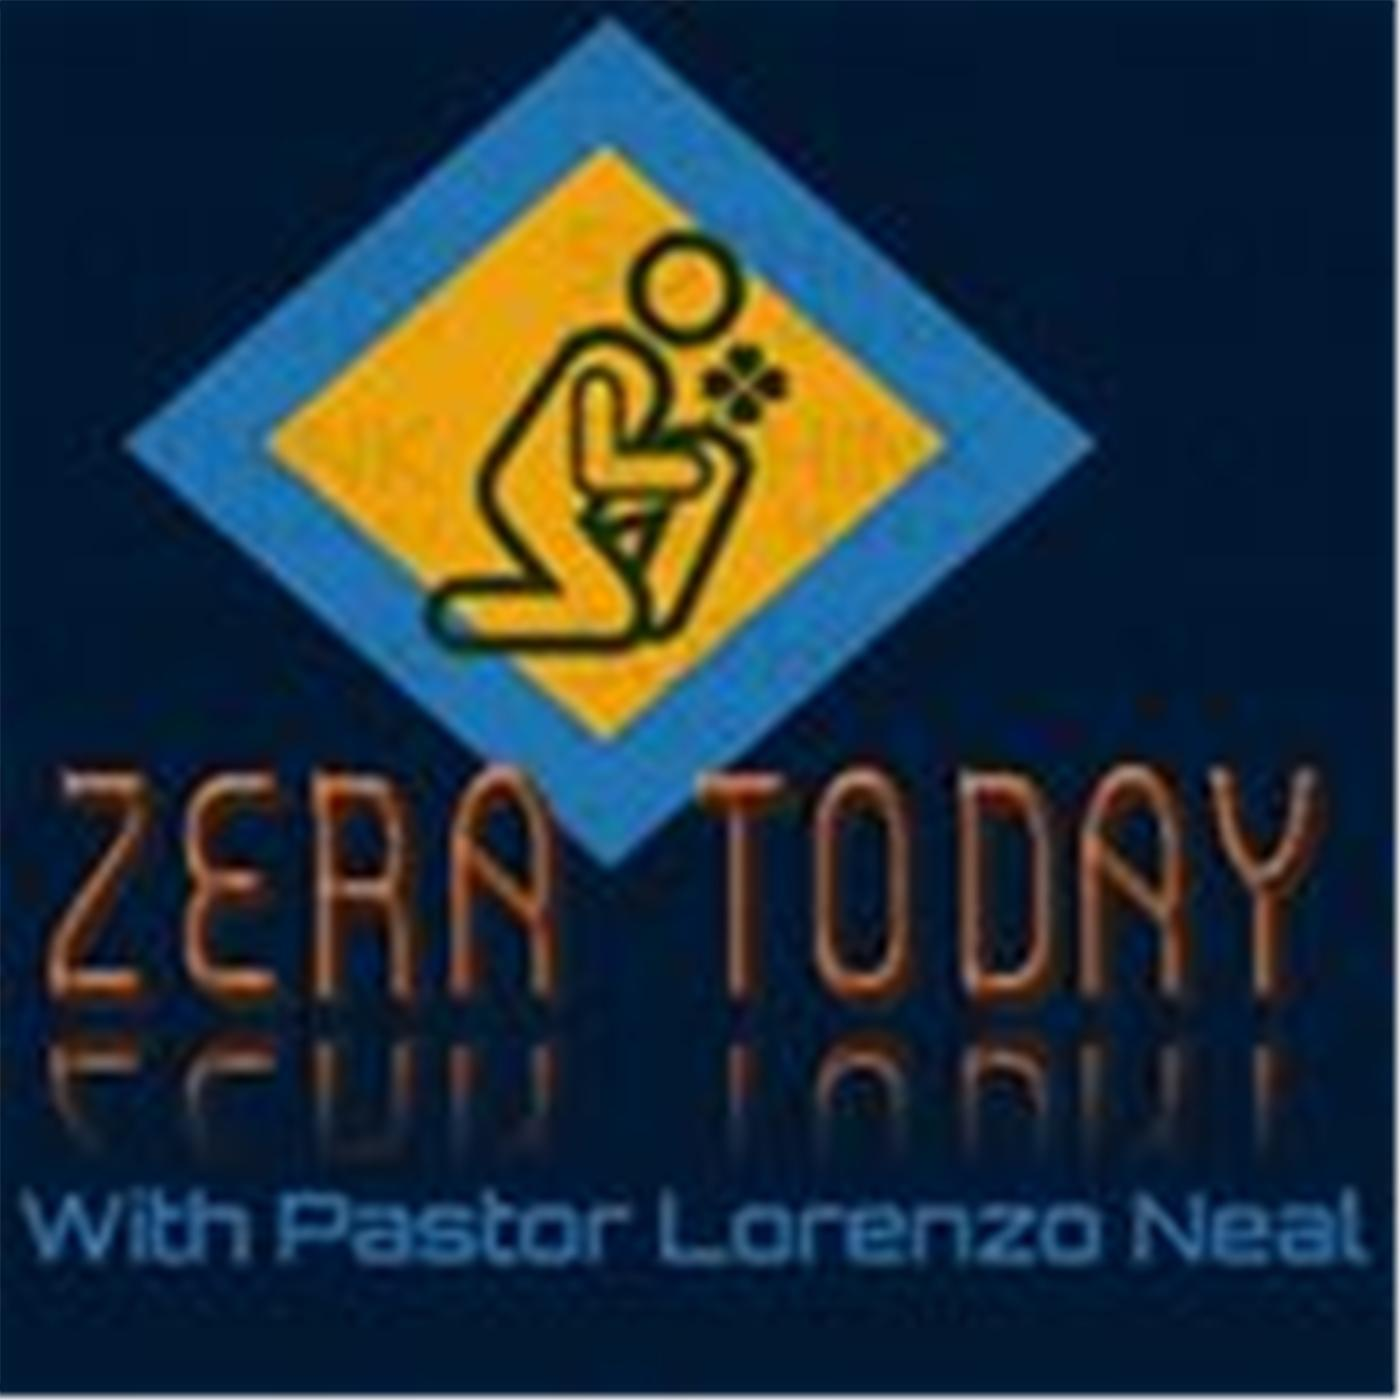 Zera Today with Pastor Lorenzo Neal